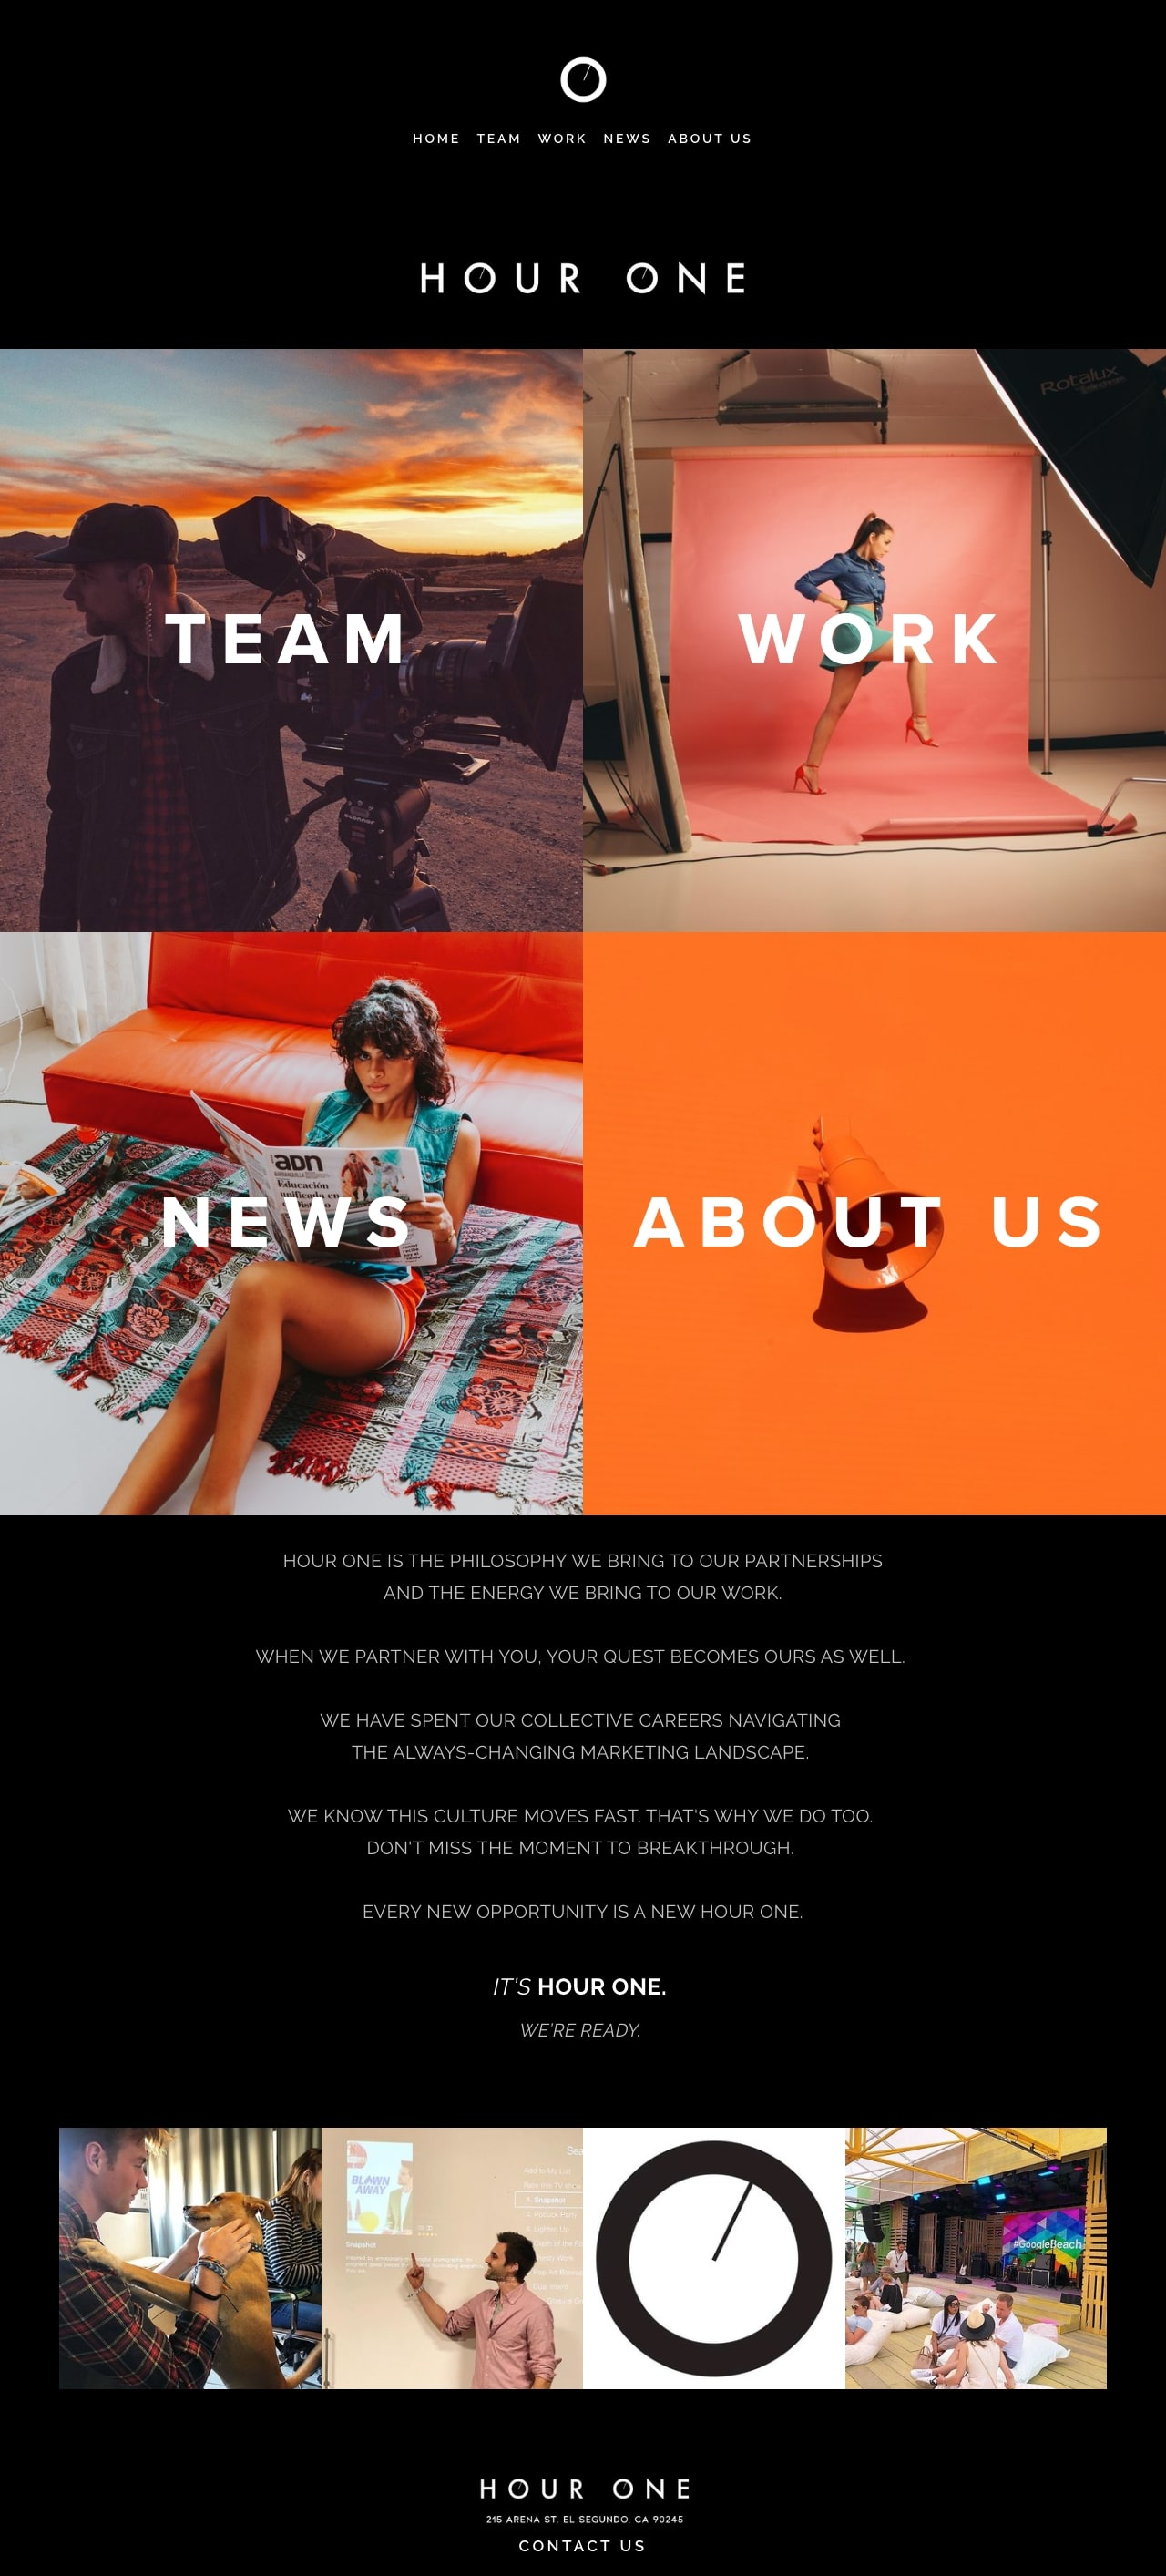 hour-one-best-examples-of-squarespace-website-for-marketing-business.jpg